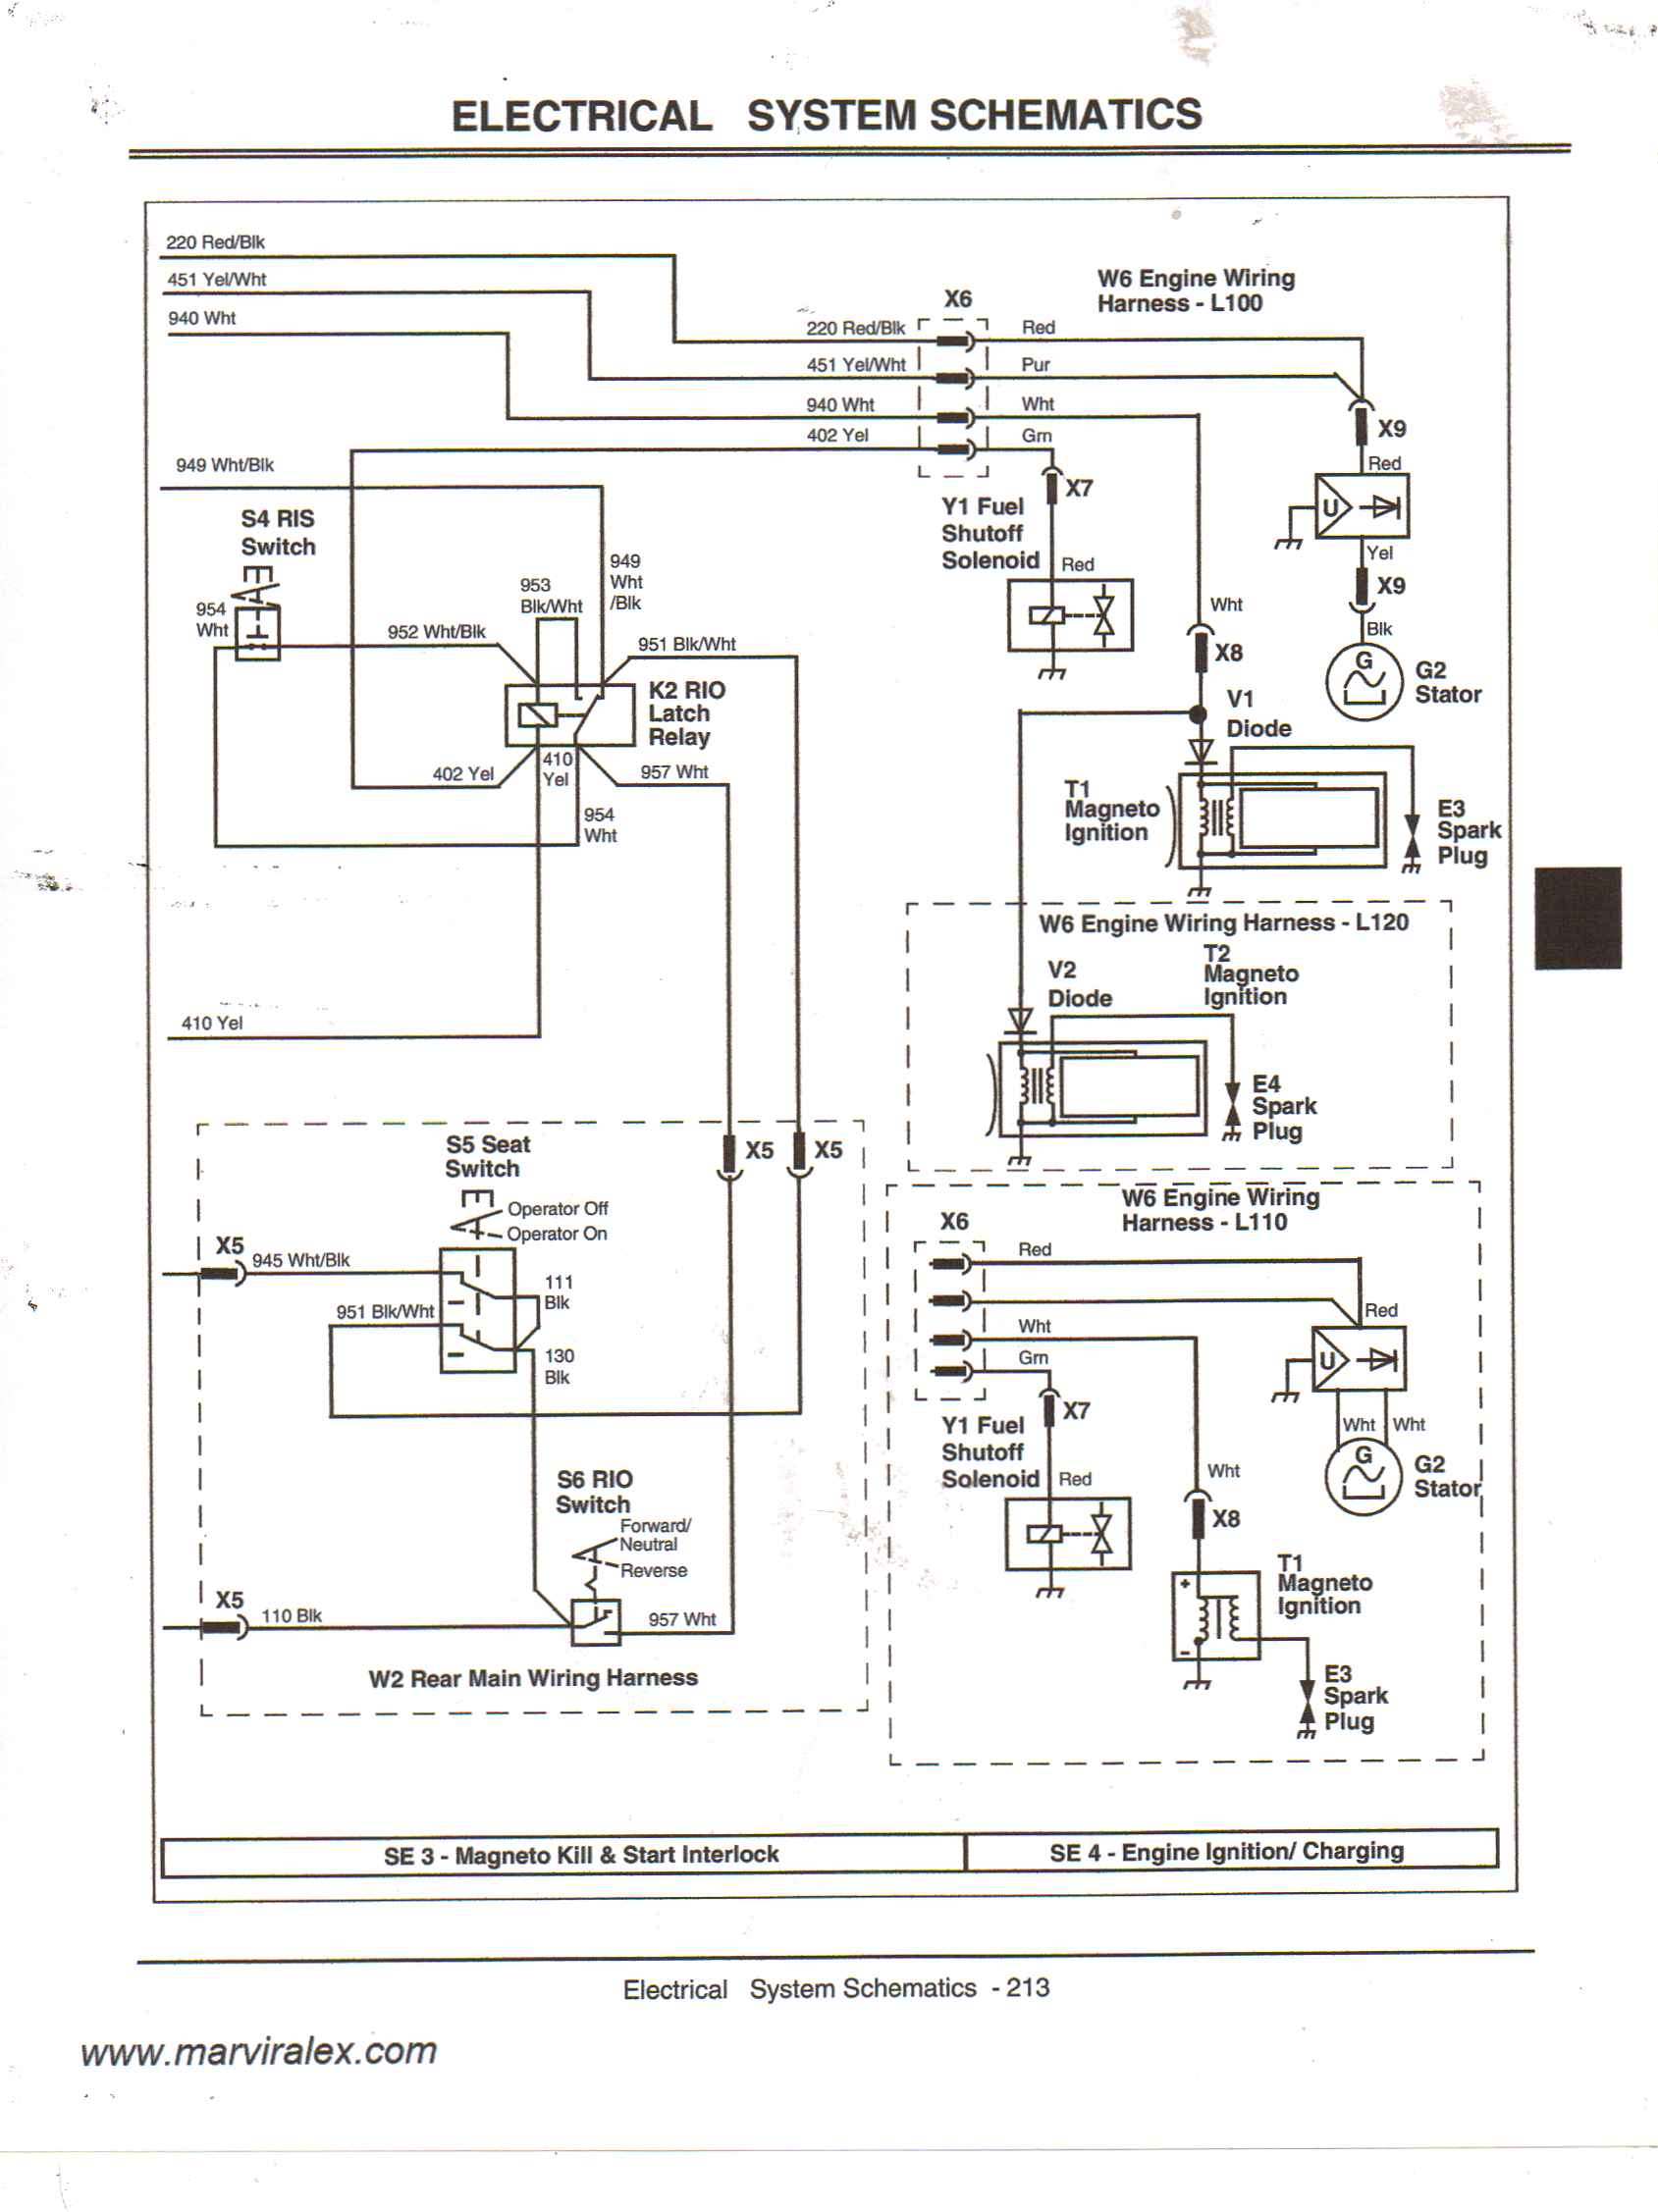 John Deere Lawn Tractor Wiring Diagram | Wiring Diagram on farmall super mta wiring diagram, john deere 50 wiring diagram, john deere model 70 engine,